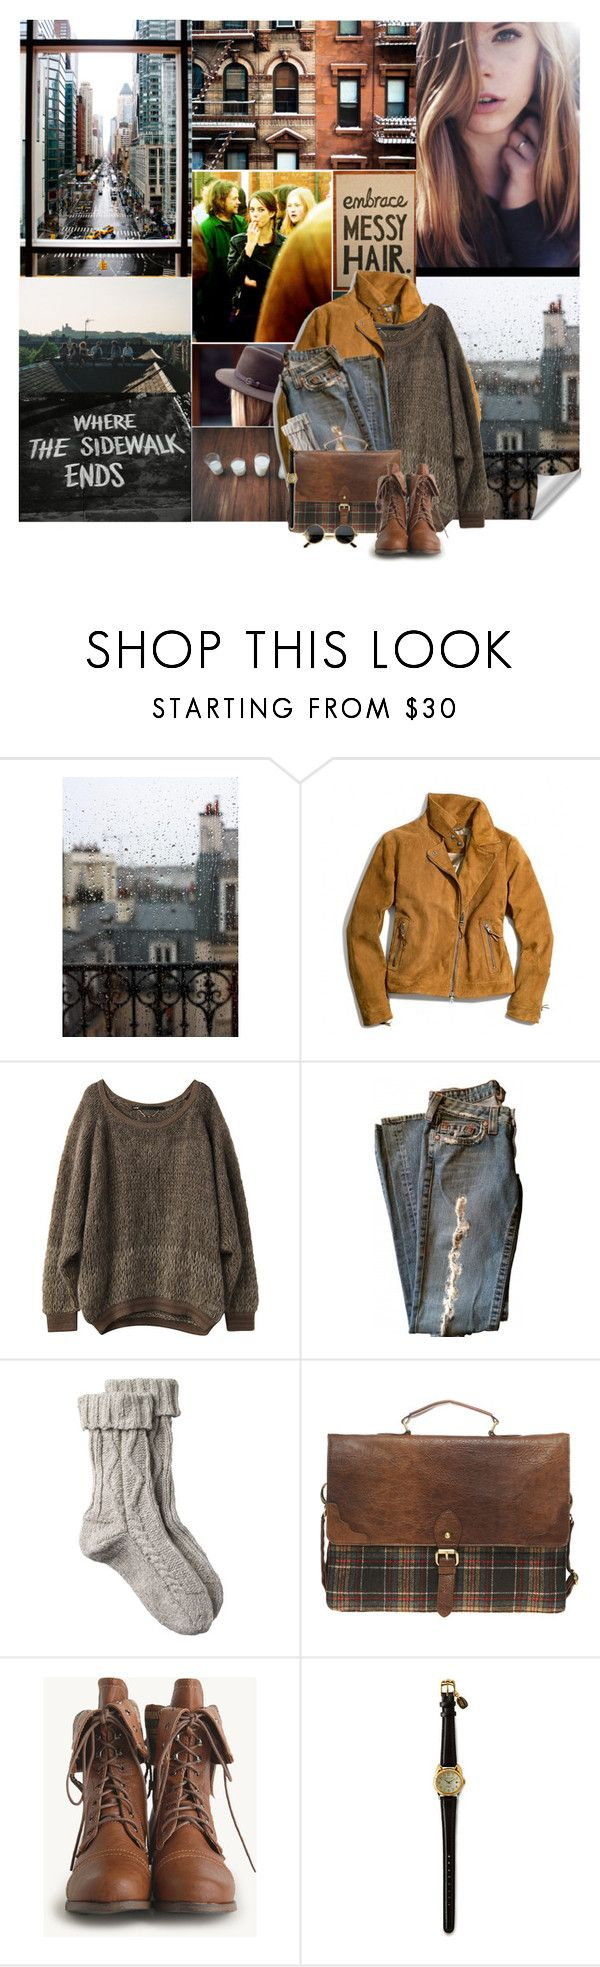 """Where the sidewalk ends"" by helen-greene ❤ liked on Polyvore featuring мода, OTTO, Coach, Fat Face, ASOS, grunge и topset"